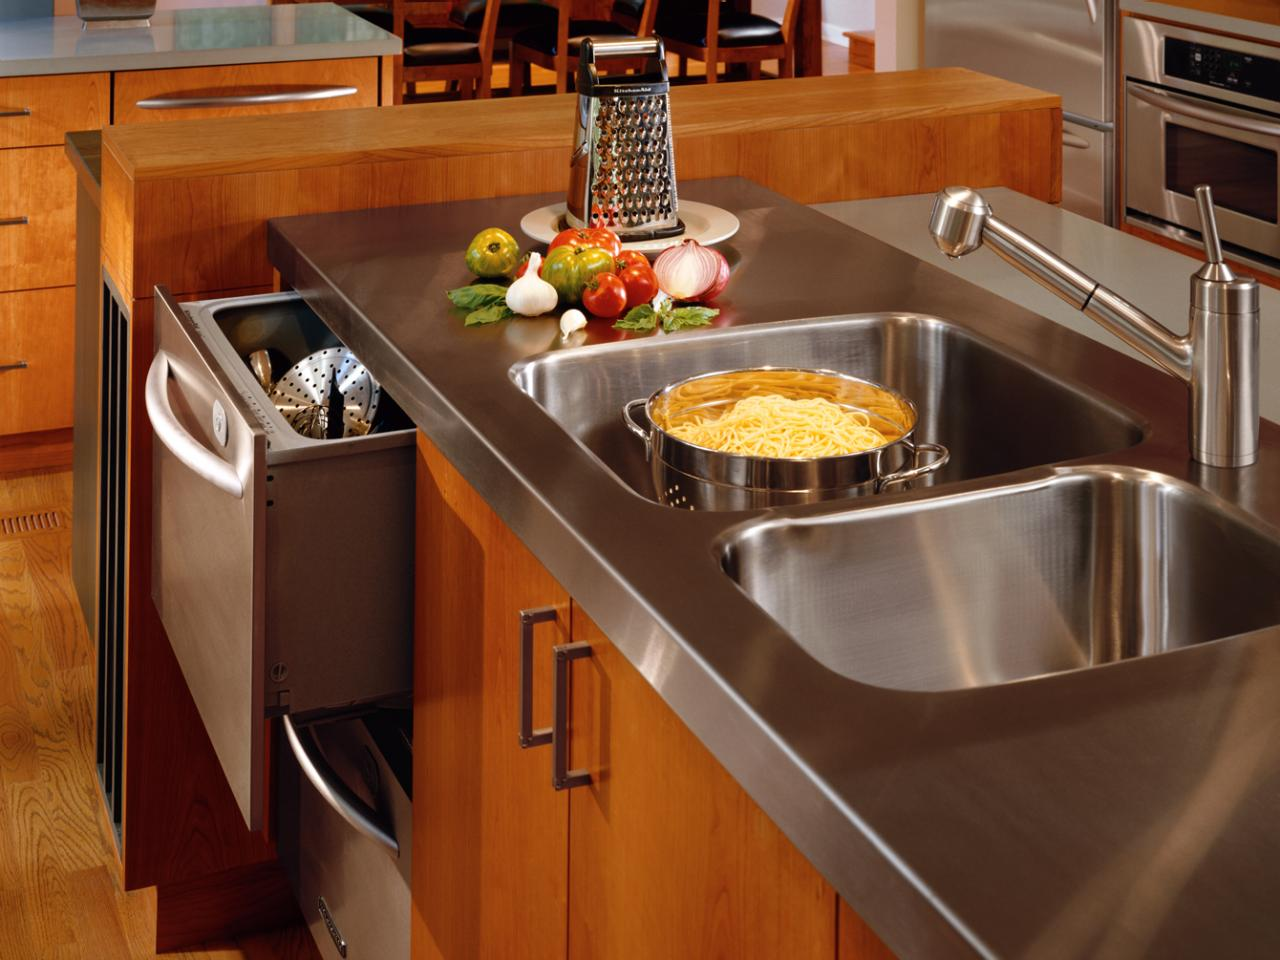 Stainless Steel Countertops Cost Installed Plus Pros And Cons Of Stainless Steel Tops Countertop Costs And Options For Kitchens And Bathrooms